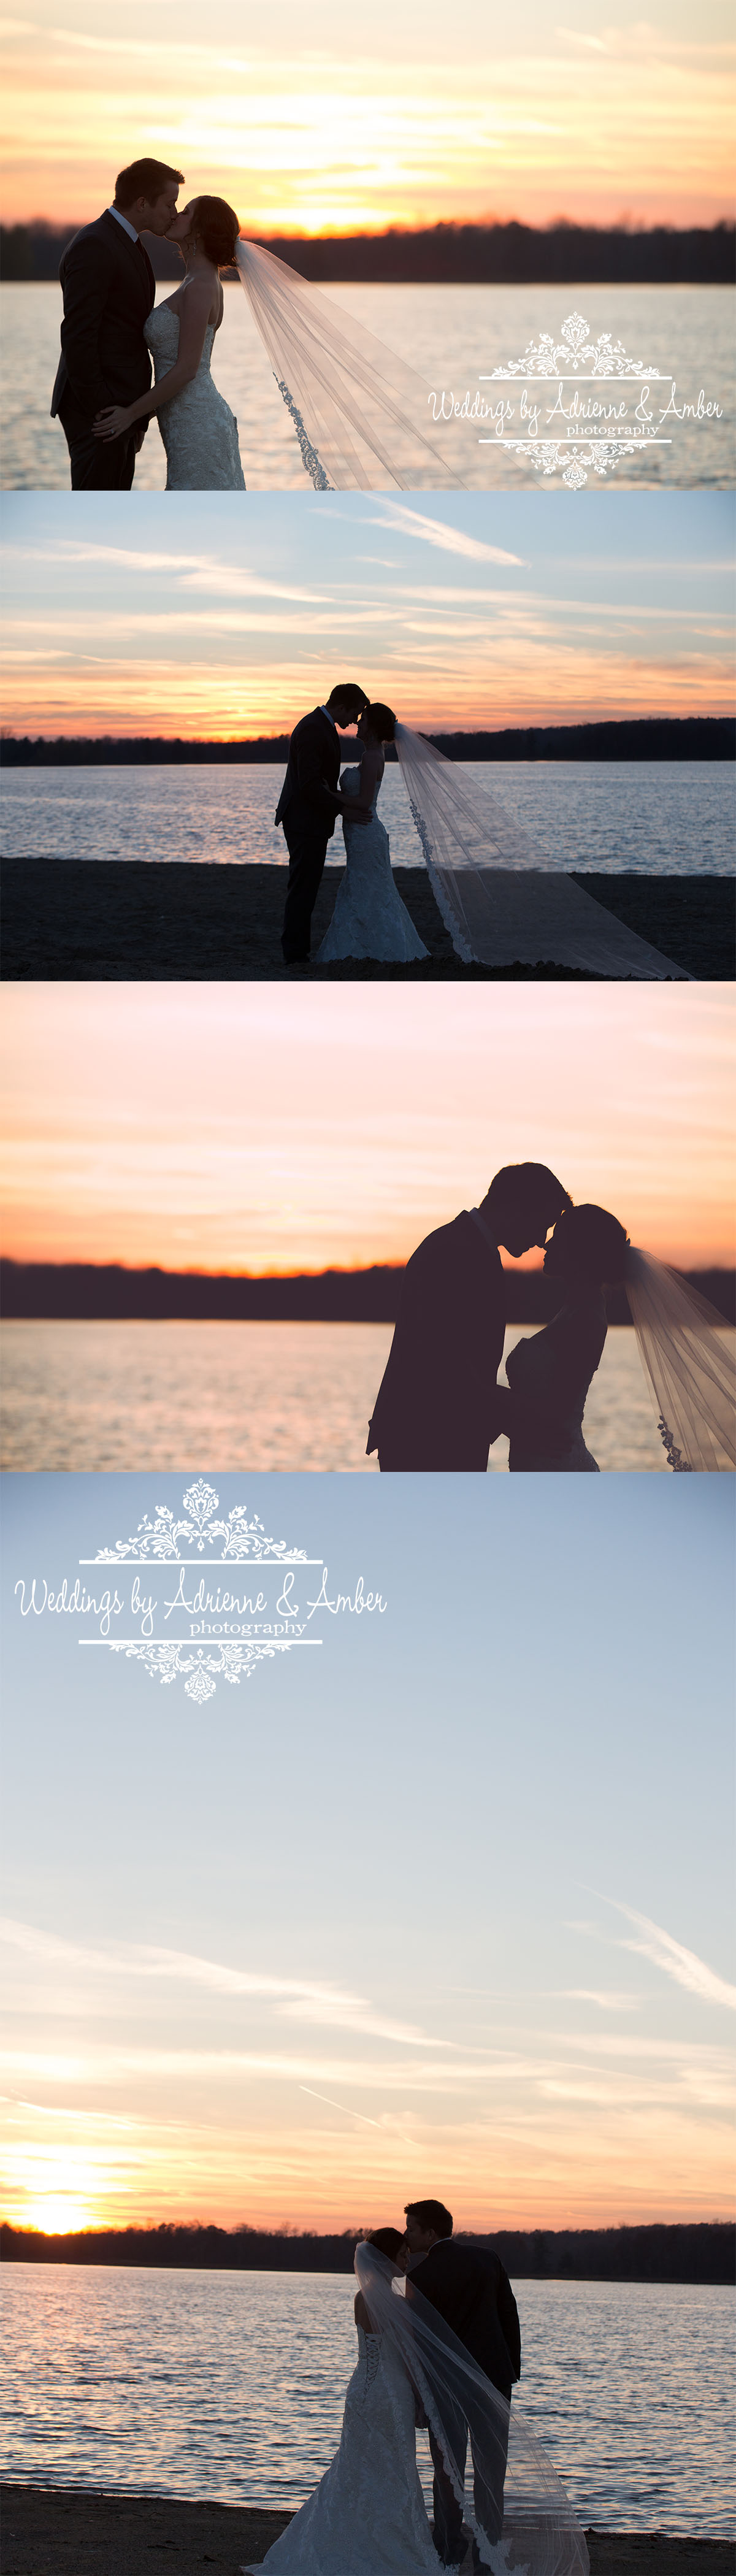 Royal Oak Wedding Photography - Weddings by Adrienne and Amber #afterglow #sunset #goldenhour #weddingphotography #wedding #photography #newday #veil #beach #evening #nightsky #bride